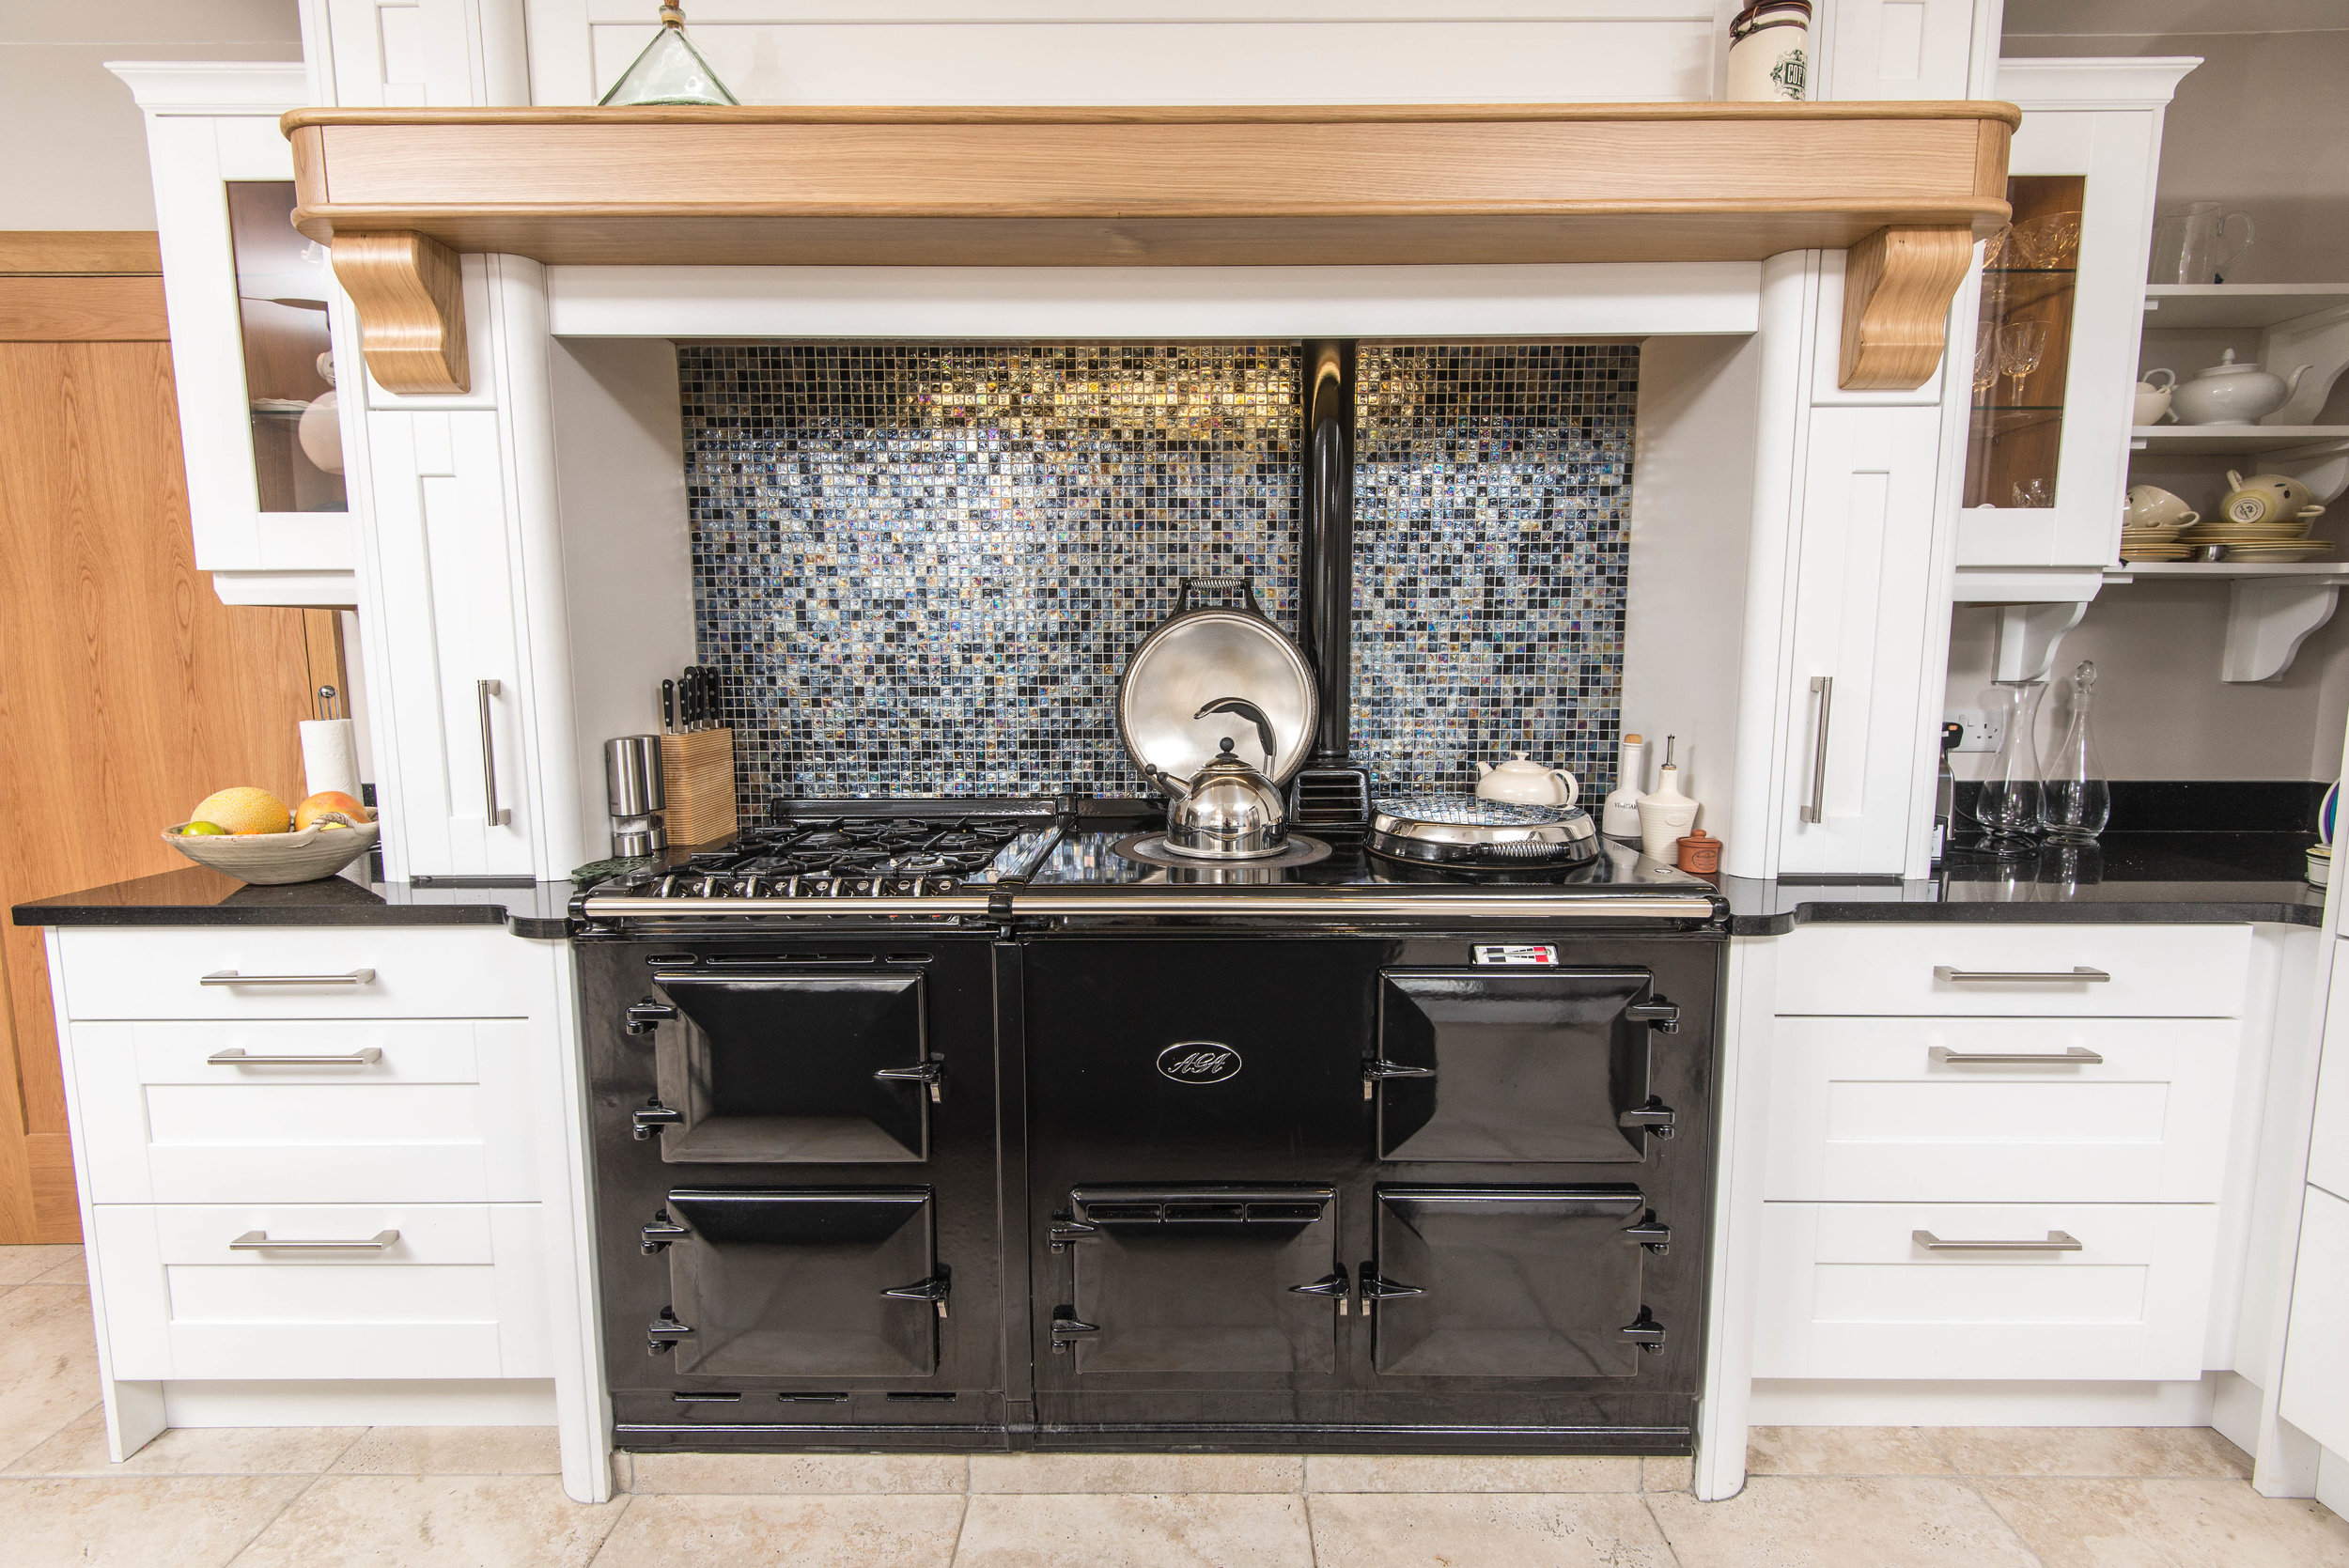 MN -008 -Hand painted kitchen.JPG